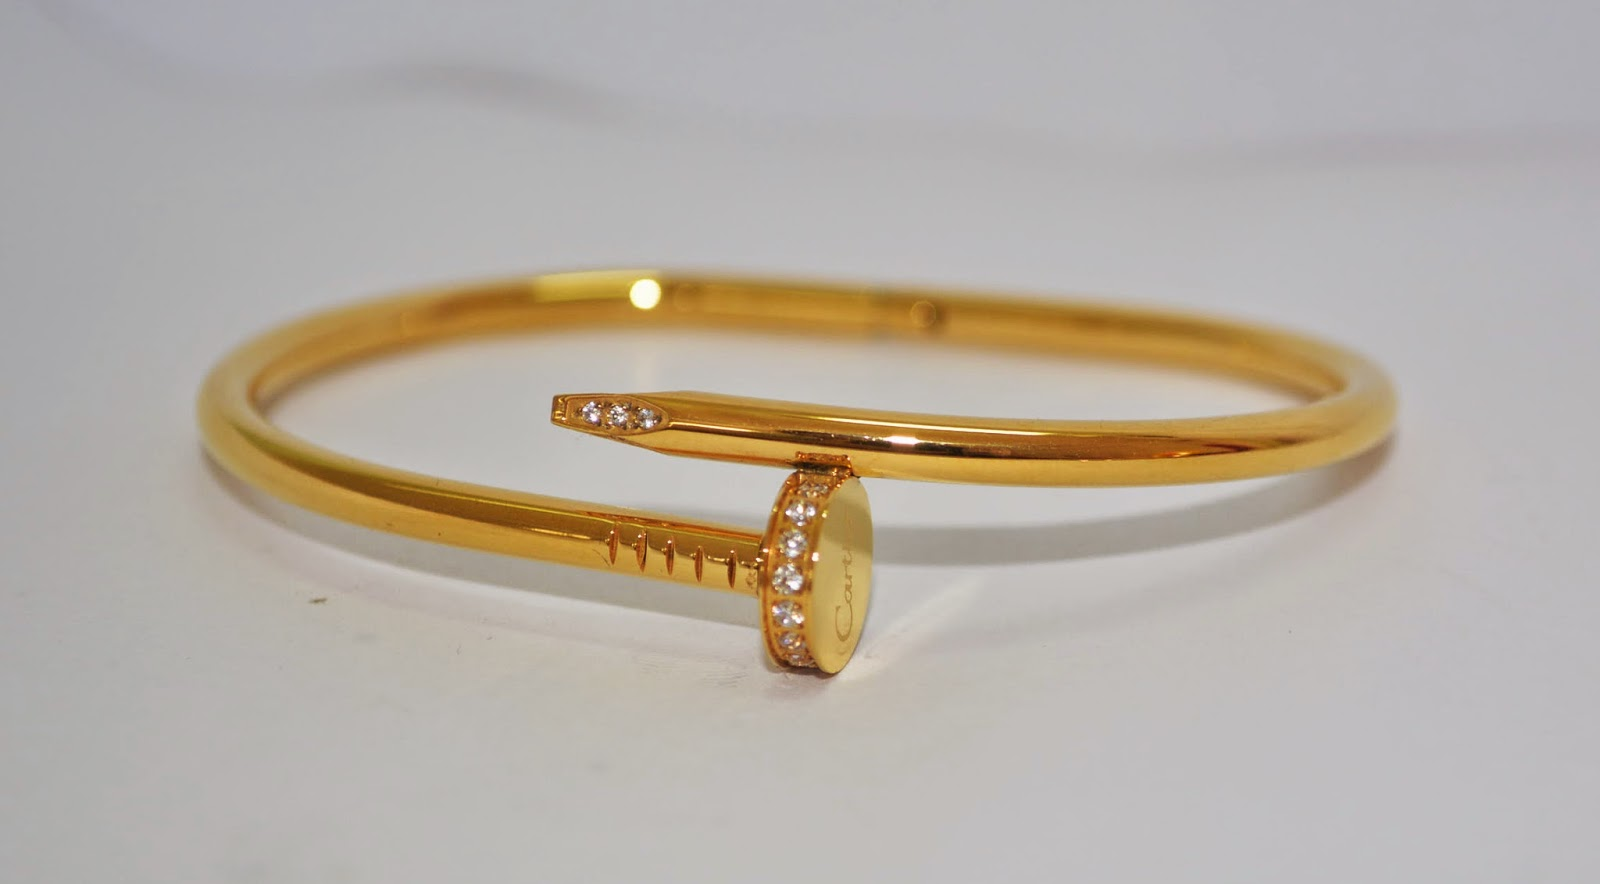 Cartier Love Bracelets & Rings - Pre-Owned & New ...